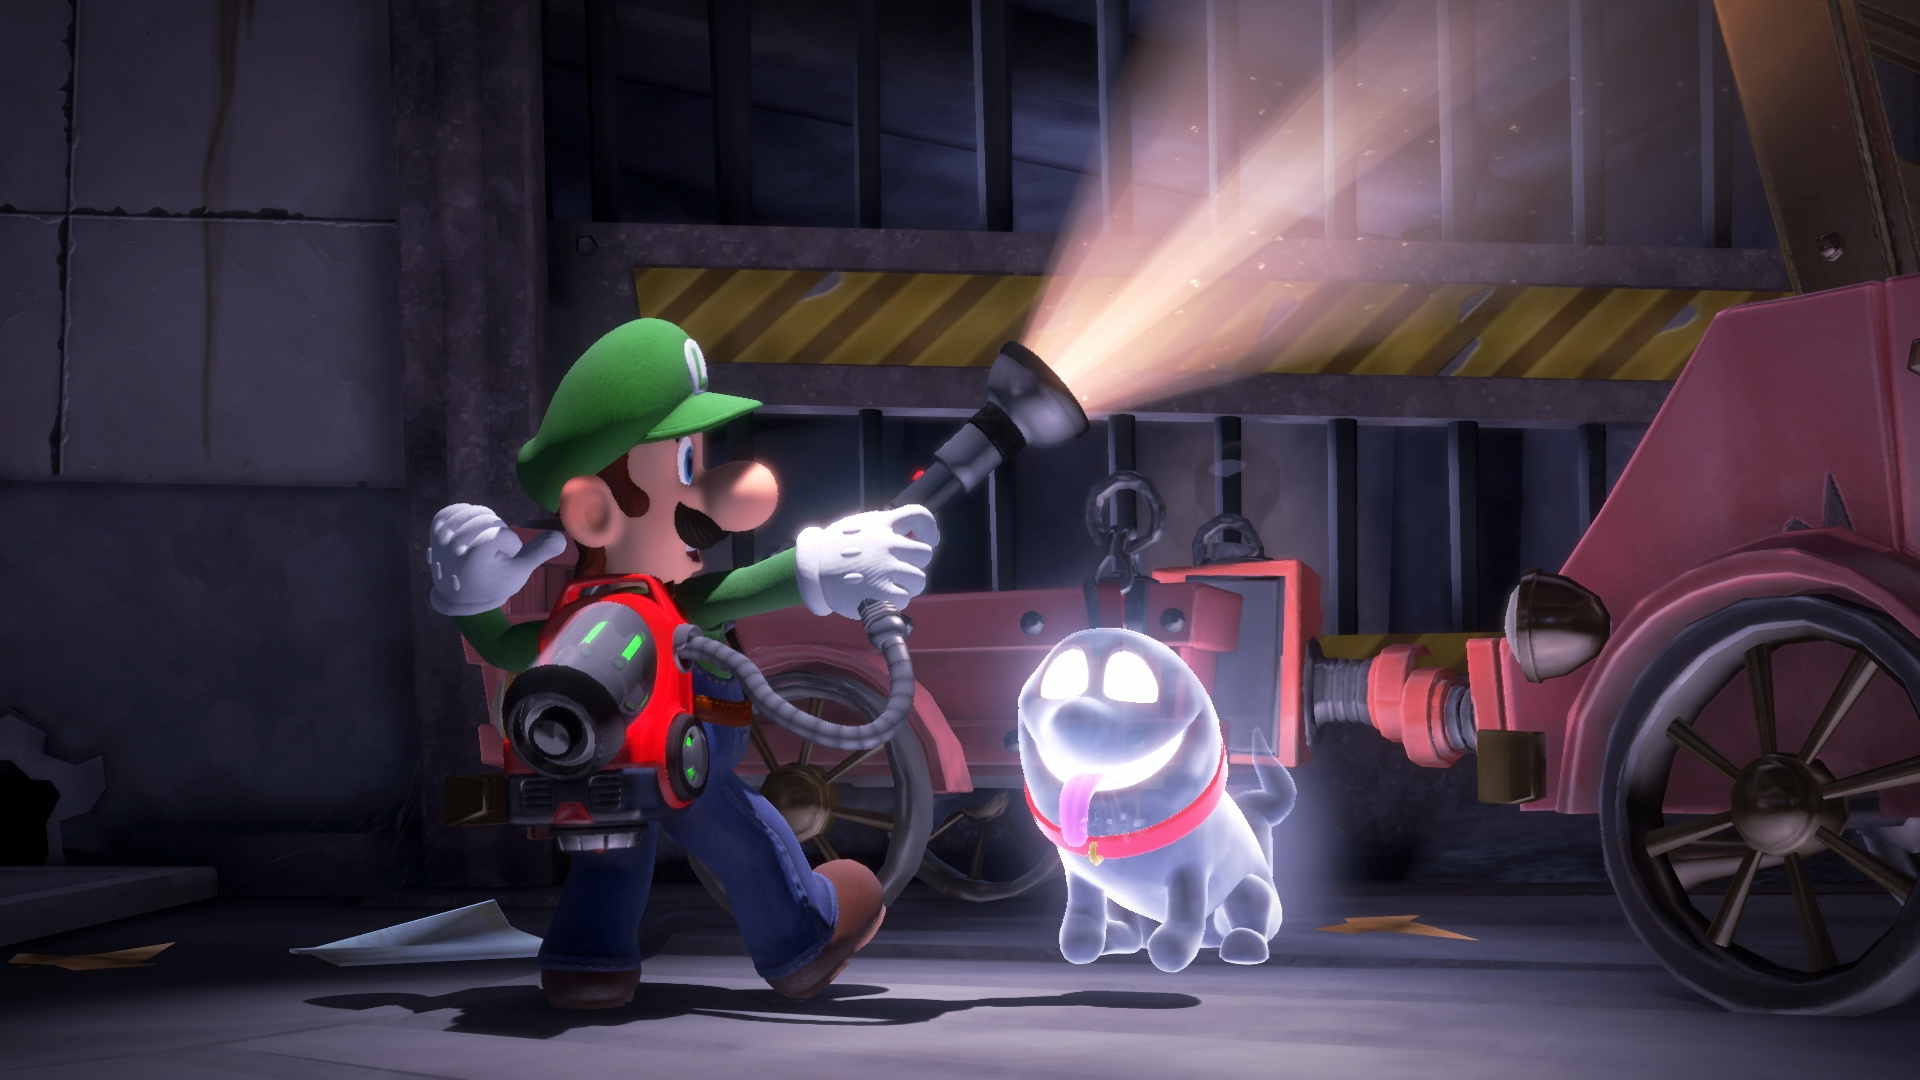 E3 2019: New Luigi's Mansion 3 Trailer Shows Tons Of Gameplay Details